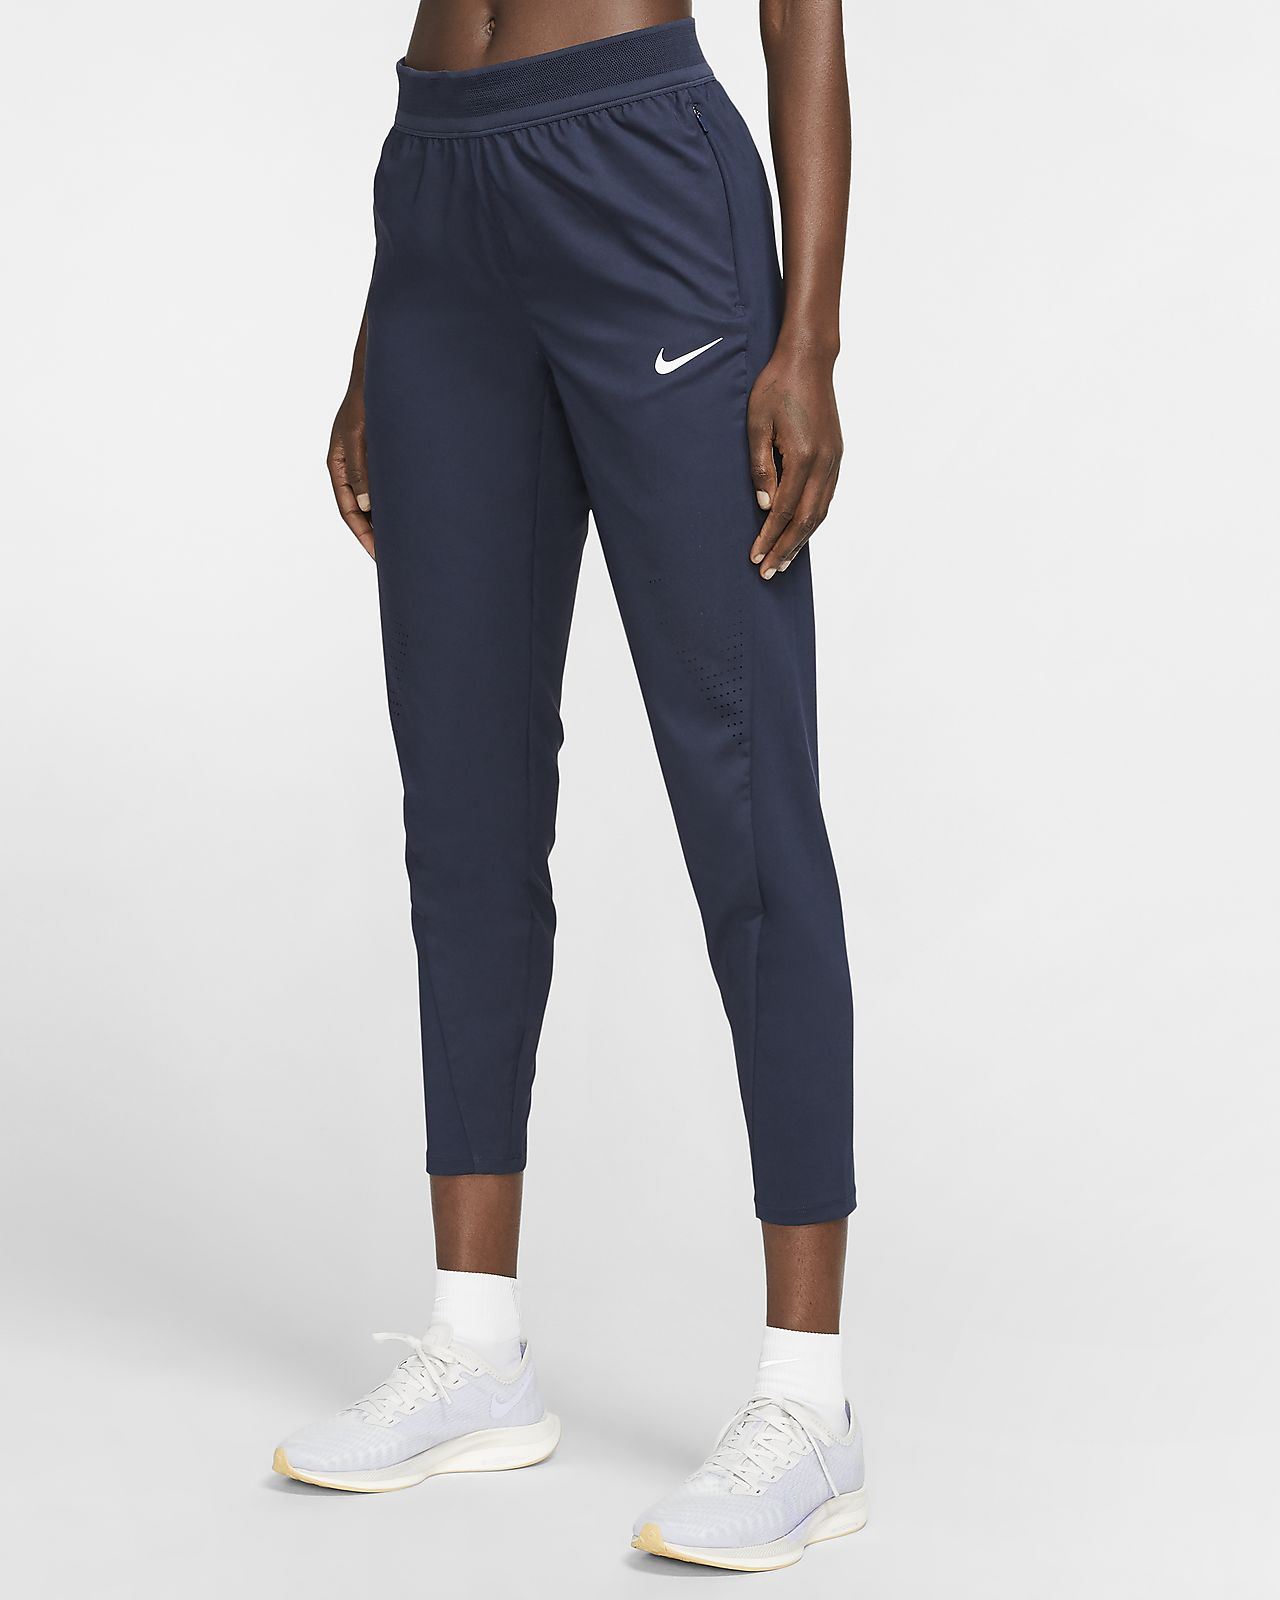 Nike Women's Run Swift Sneaker